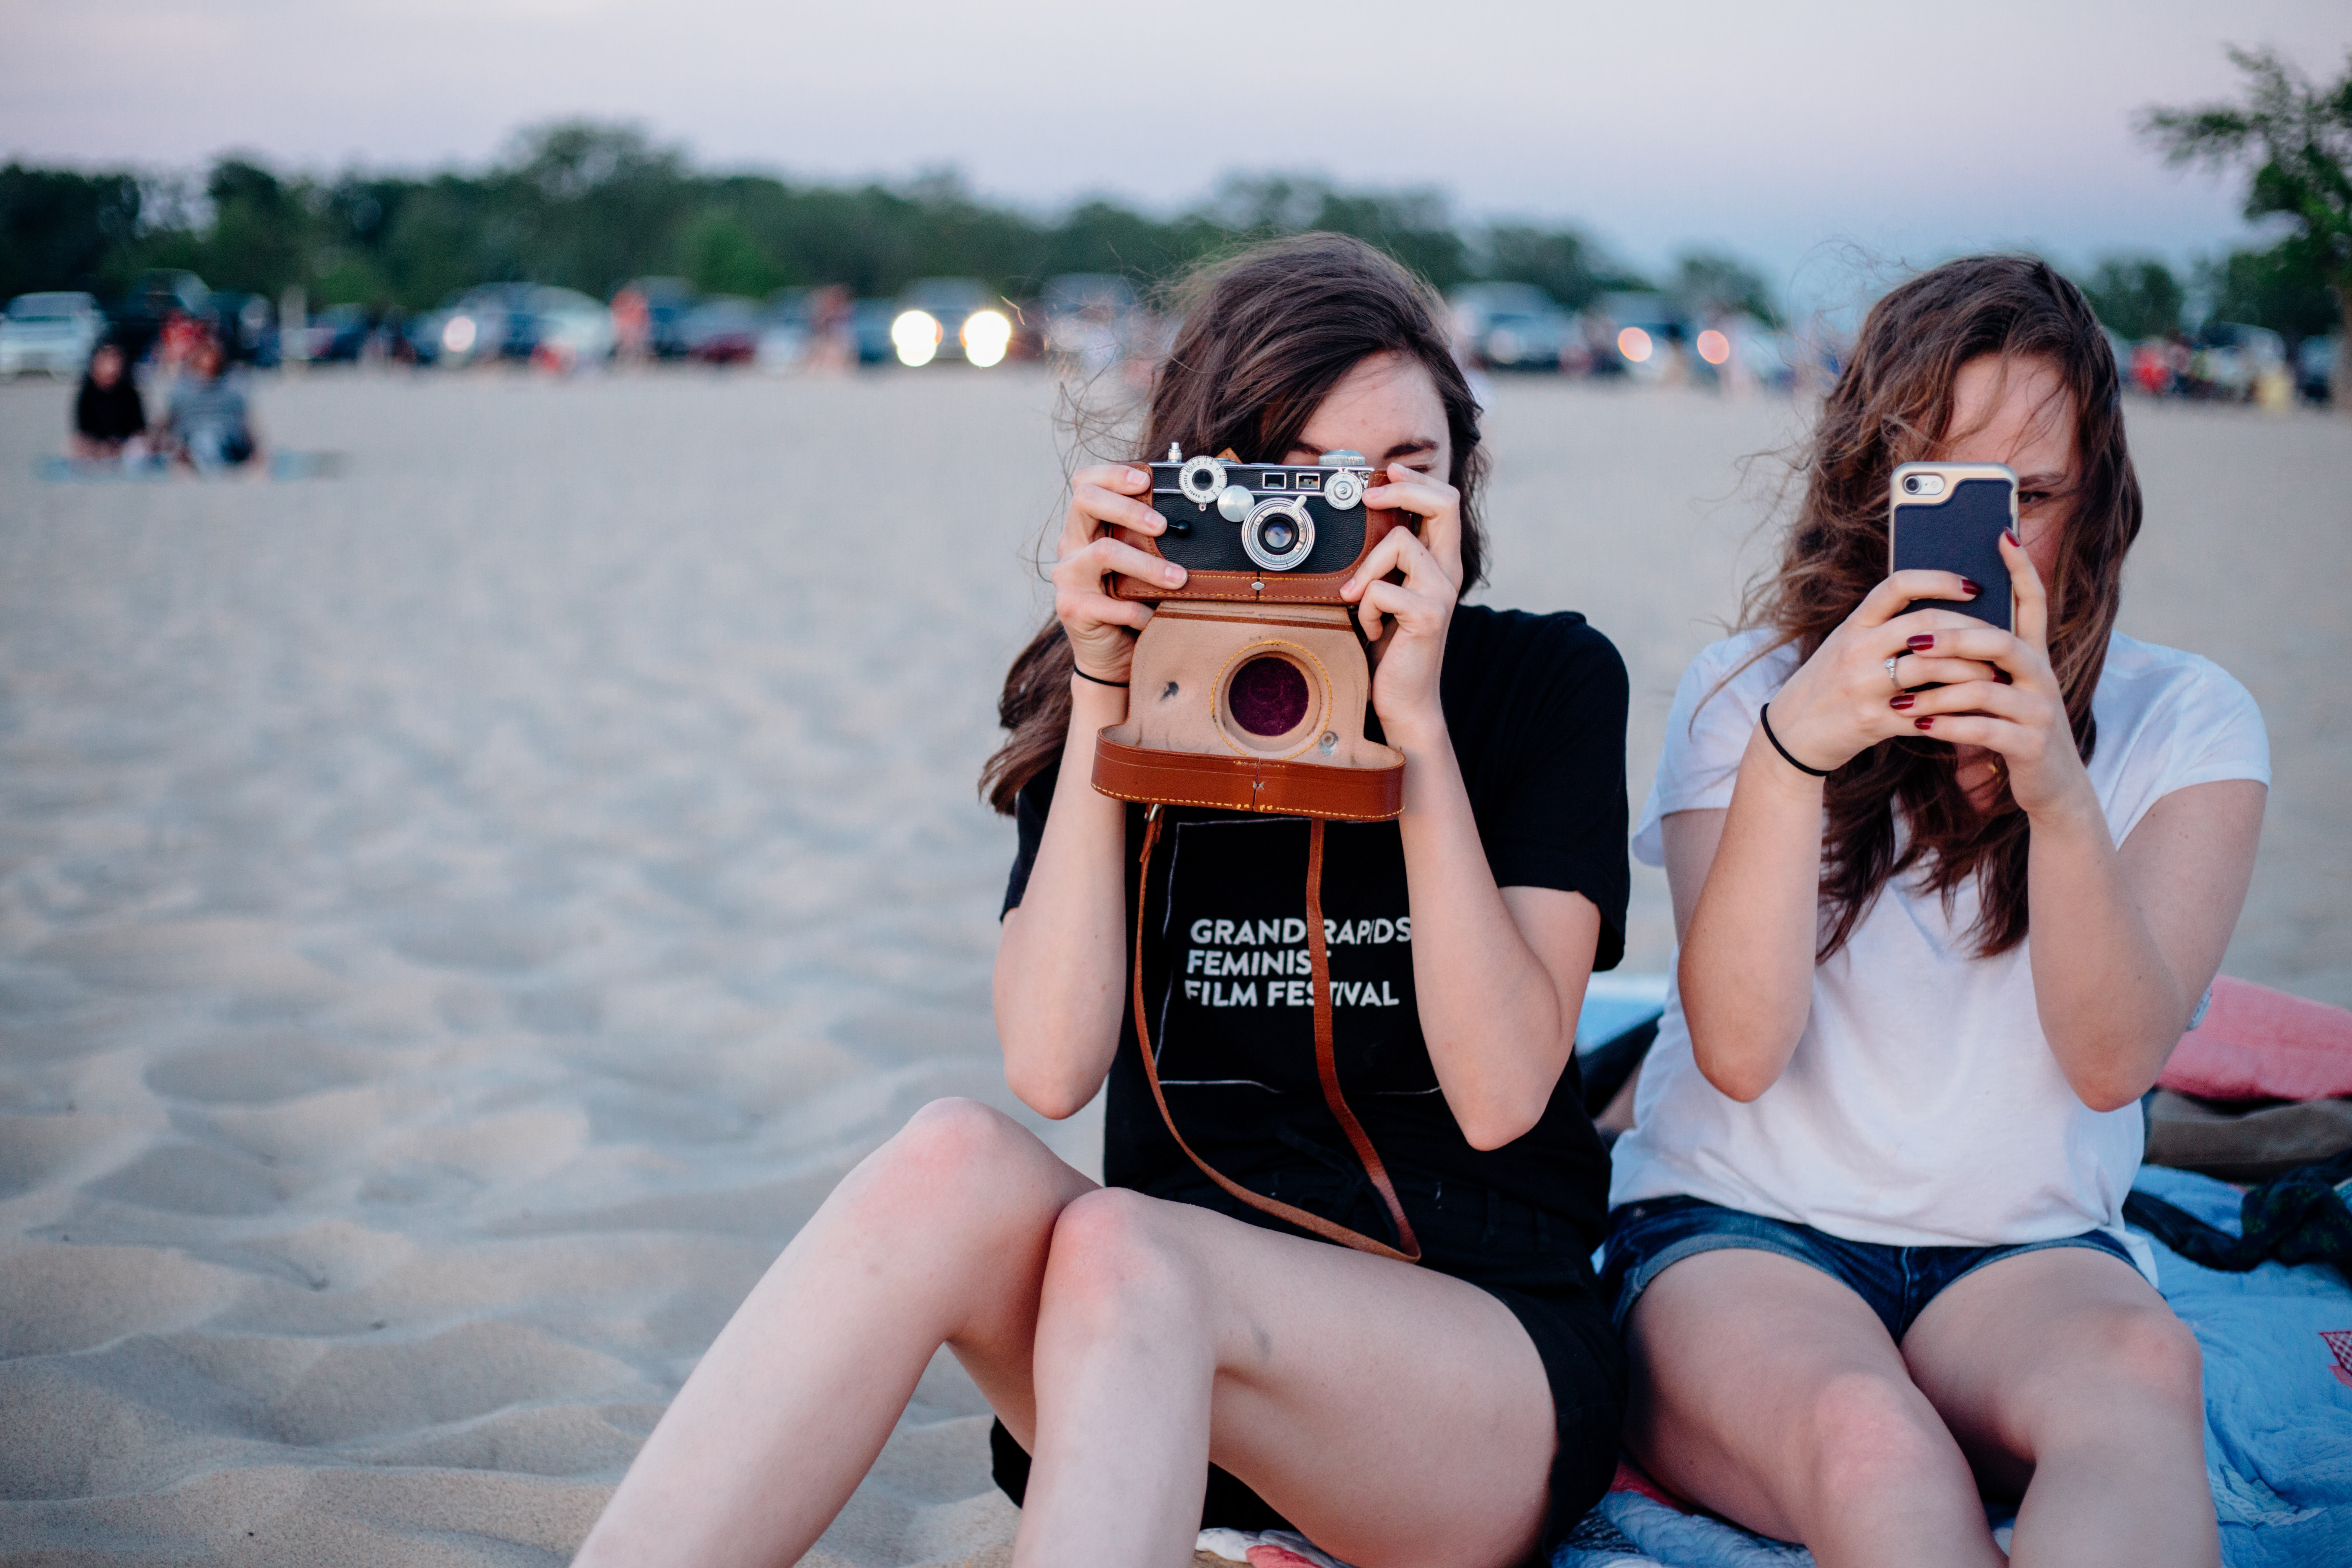 Two female friends are taking photos with a vintage camera and a smartphone at the beach.